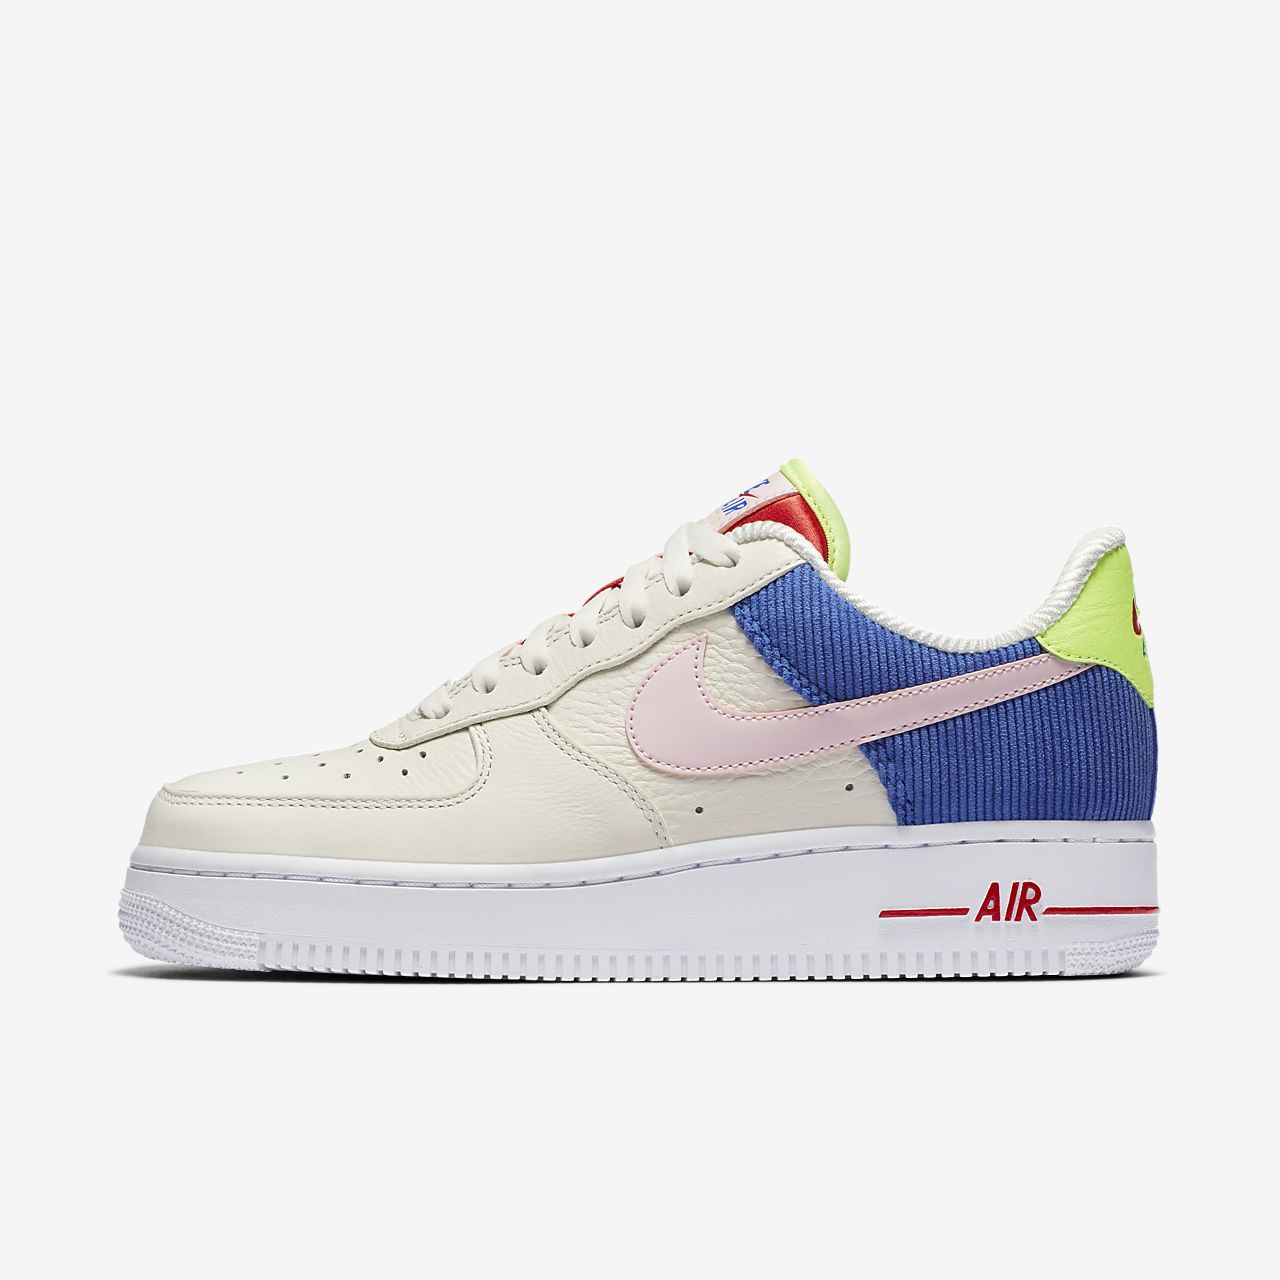 new arrivals 7ce84 e47e8 Nike Air Force 1 Low Zapatillas - Mujer